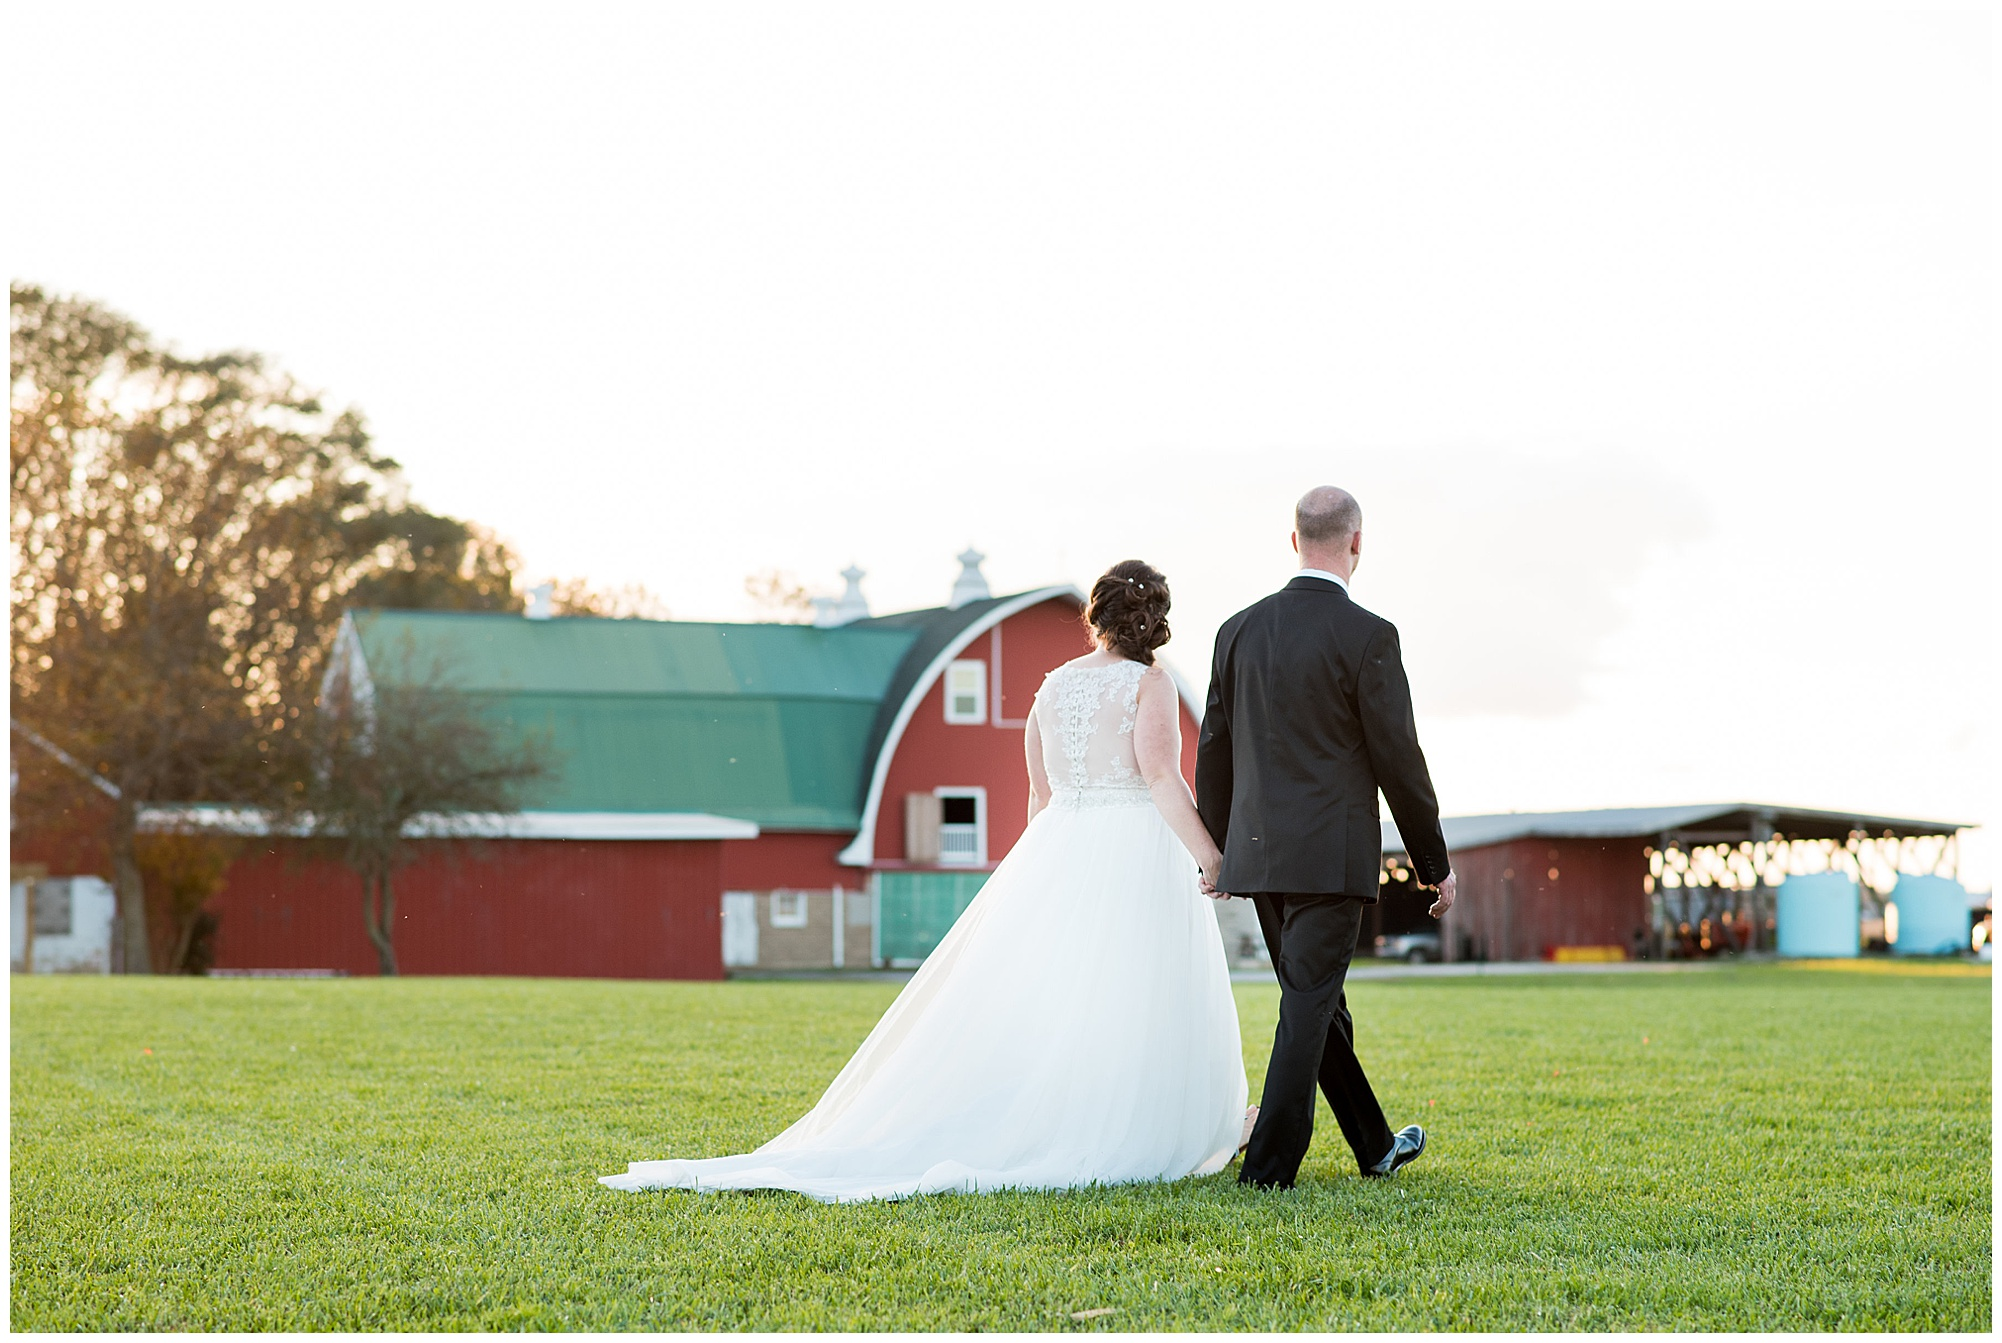 wedding photos at covered bridge inn bed and breakfast farm in lewes delaware. historic wedding barn venue on the eastern shore. fall wedding in november with rustic decor theme.